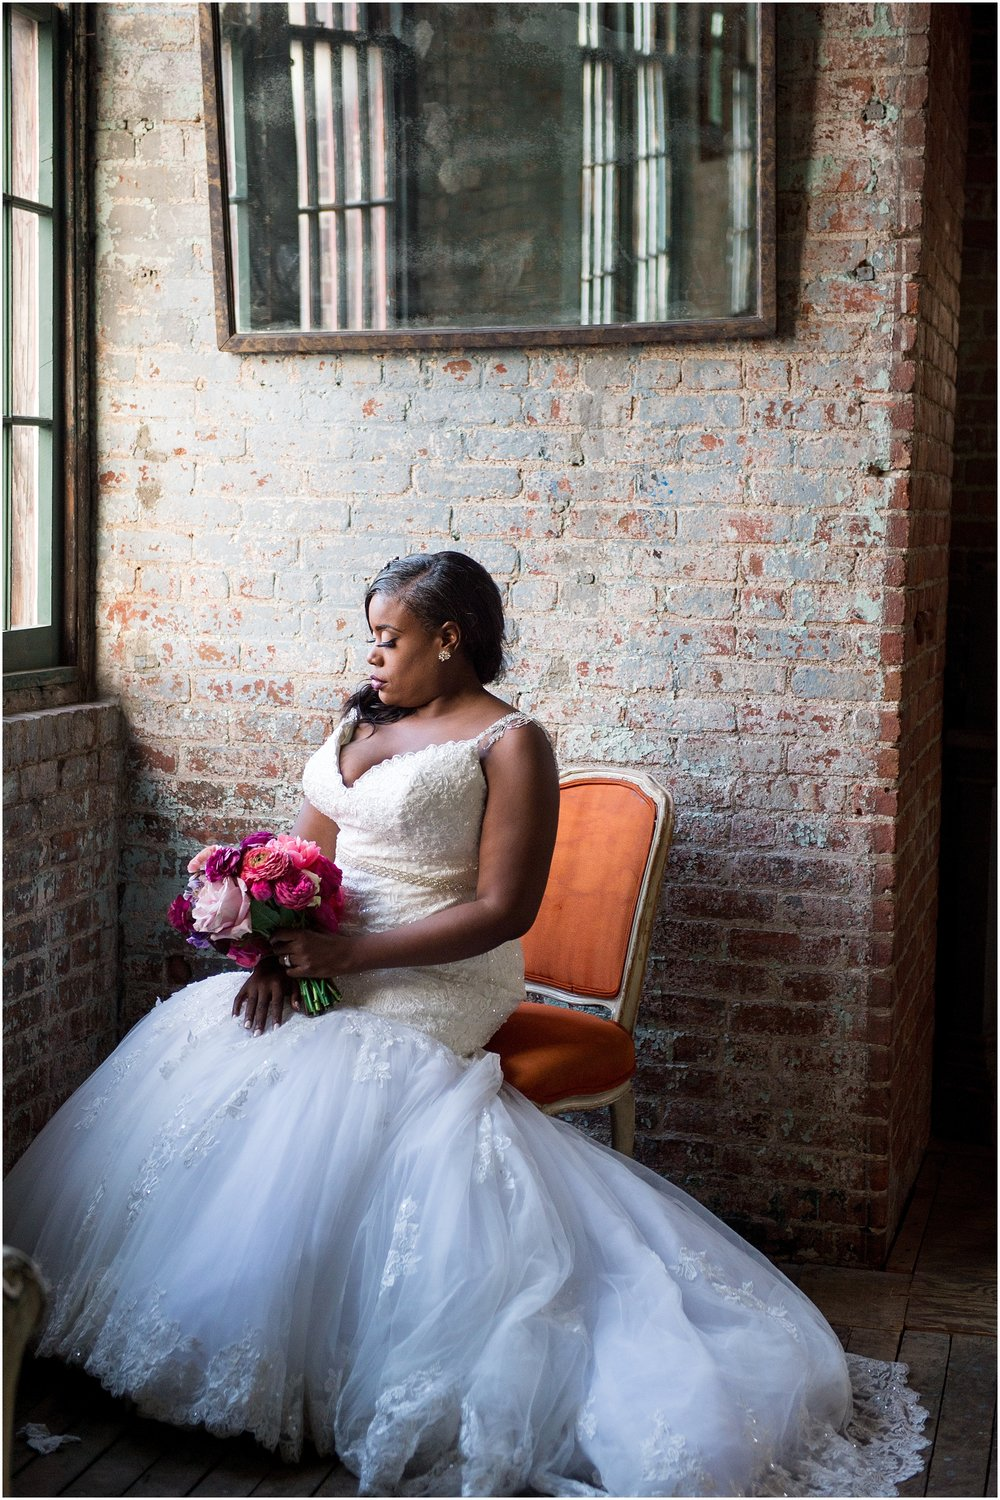 Sandrine and Eric Metropolitan Building Wedding Photography by Leandra_0026.jpg